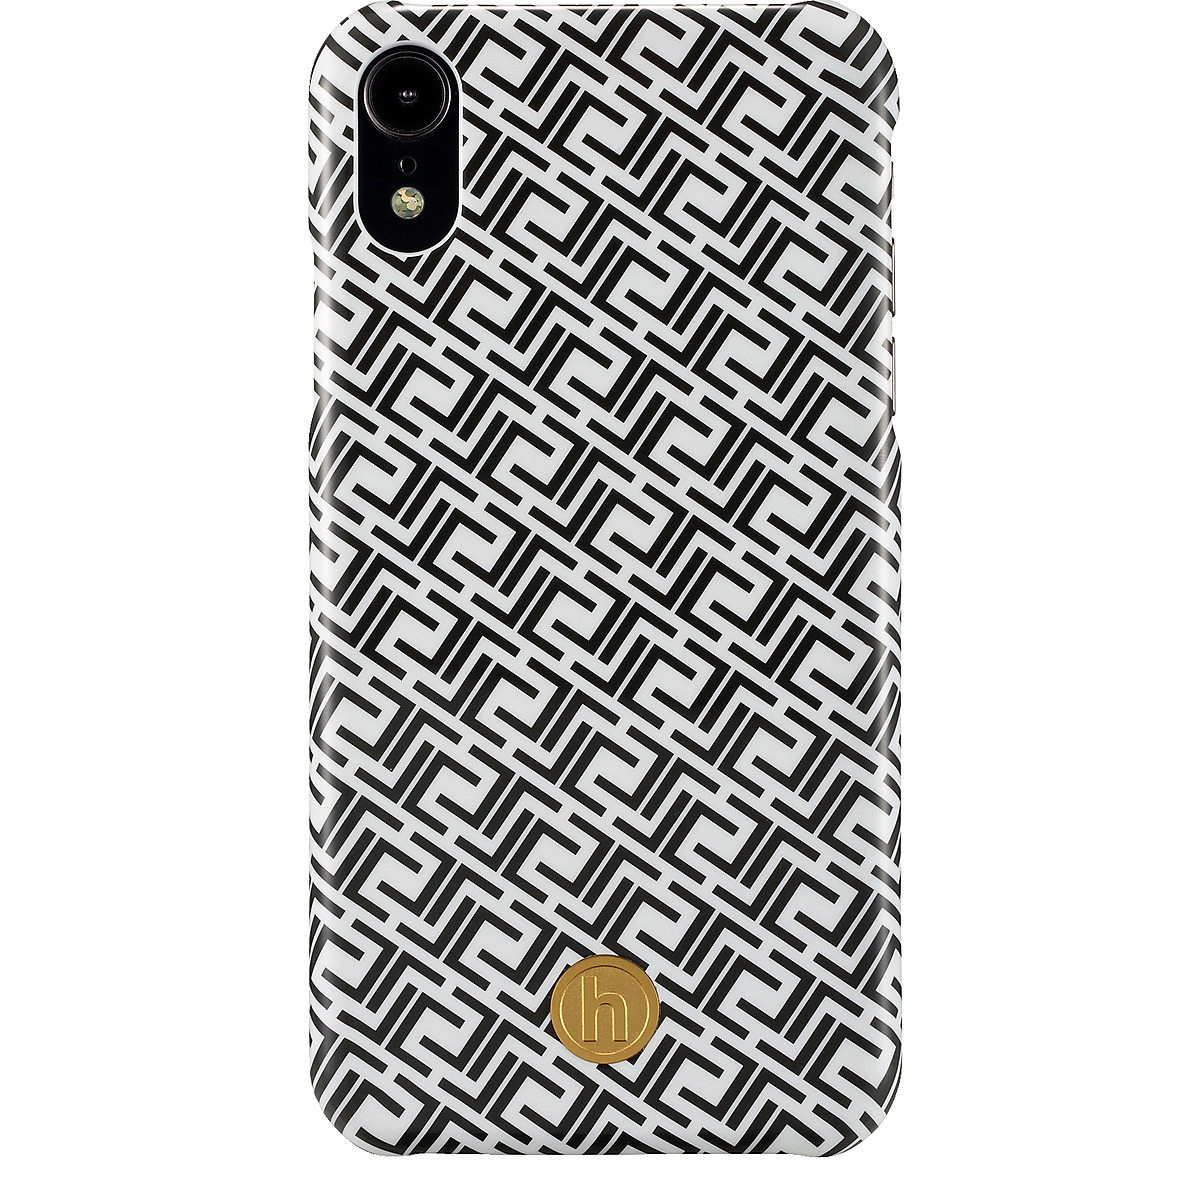 Holdit Mobile Phone Case for iPhone XR